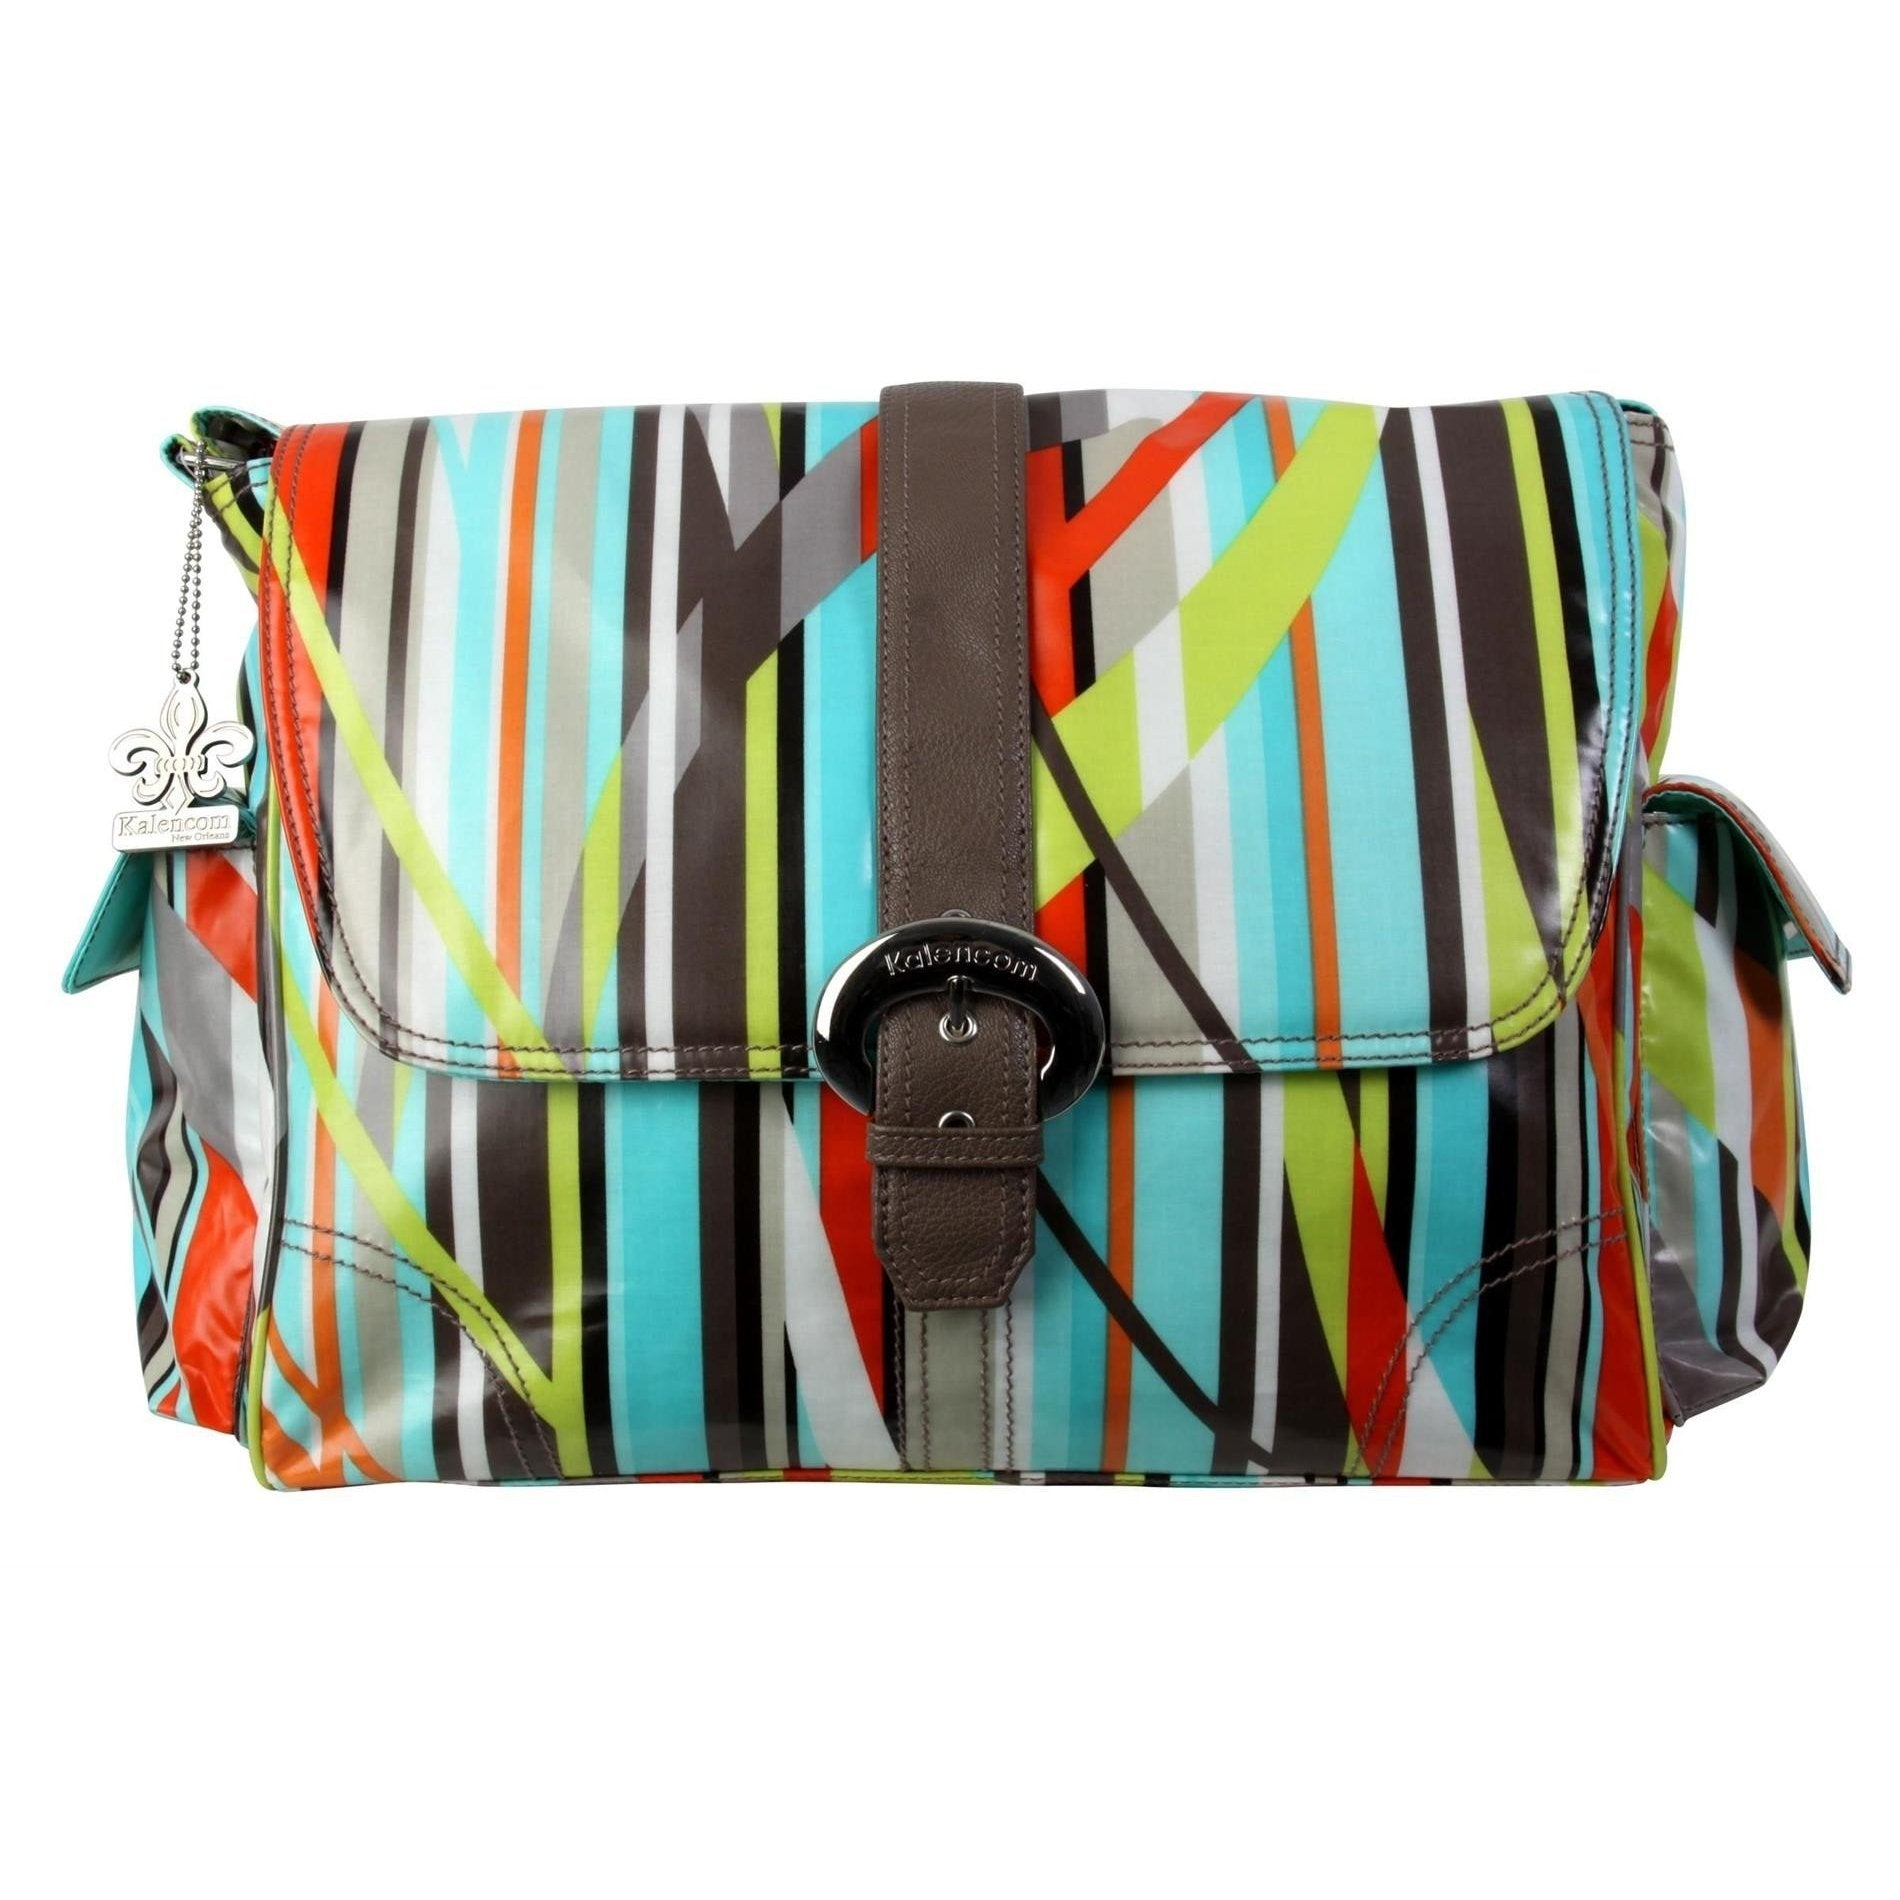 Free Style Laminated Buckle Diaper Bag | Style 2960 - Kalencom-Diaper Bags-Default-Jack and Jill Boutique